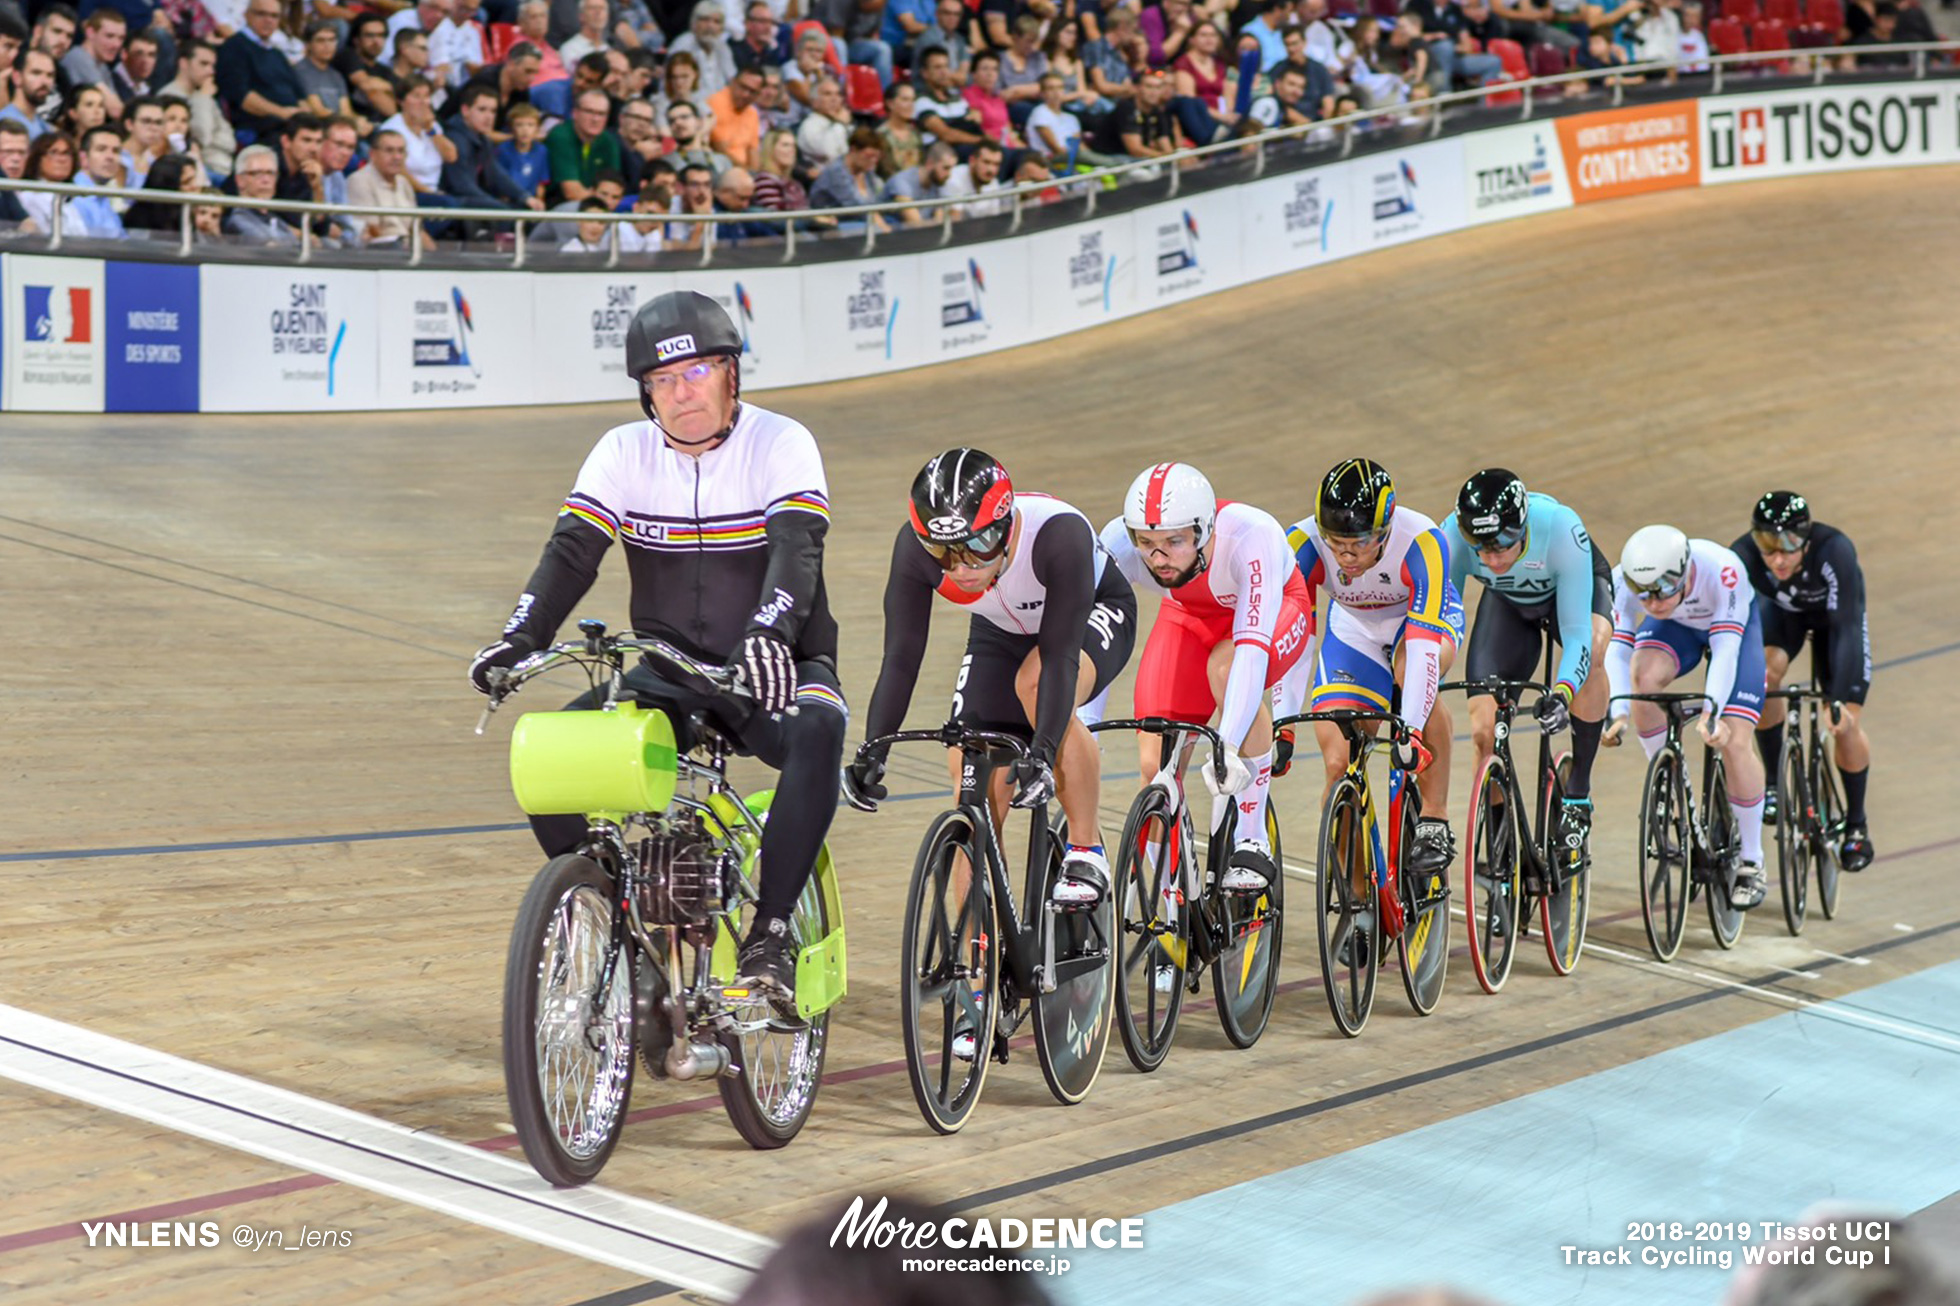 2018-2019 TRACK CYCLING WORLD CUP I Men's KEIRIN